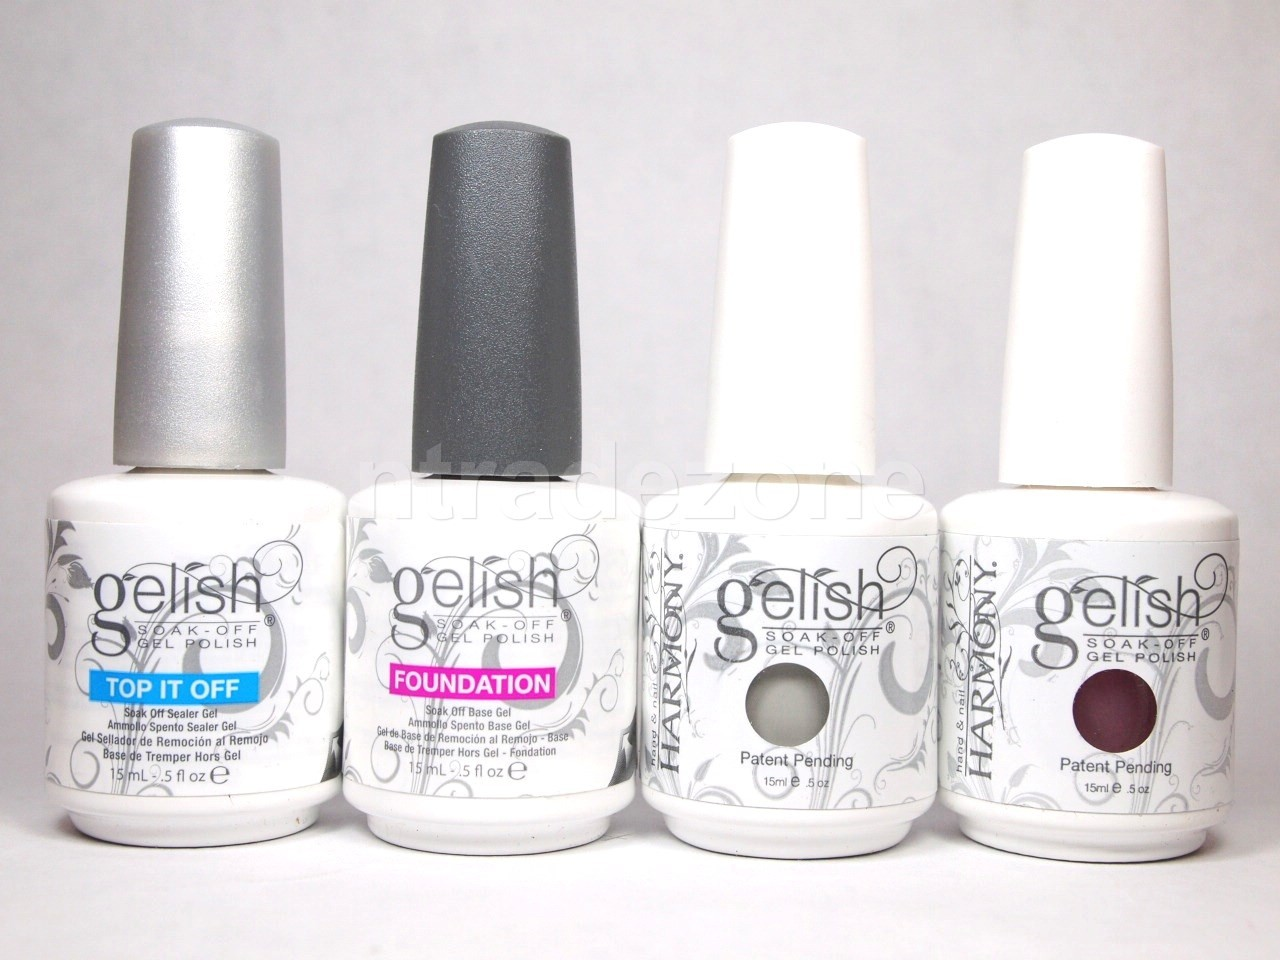 Health & Beauty > Nail Care, Manicure & Pedicure > Artificial Nails